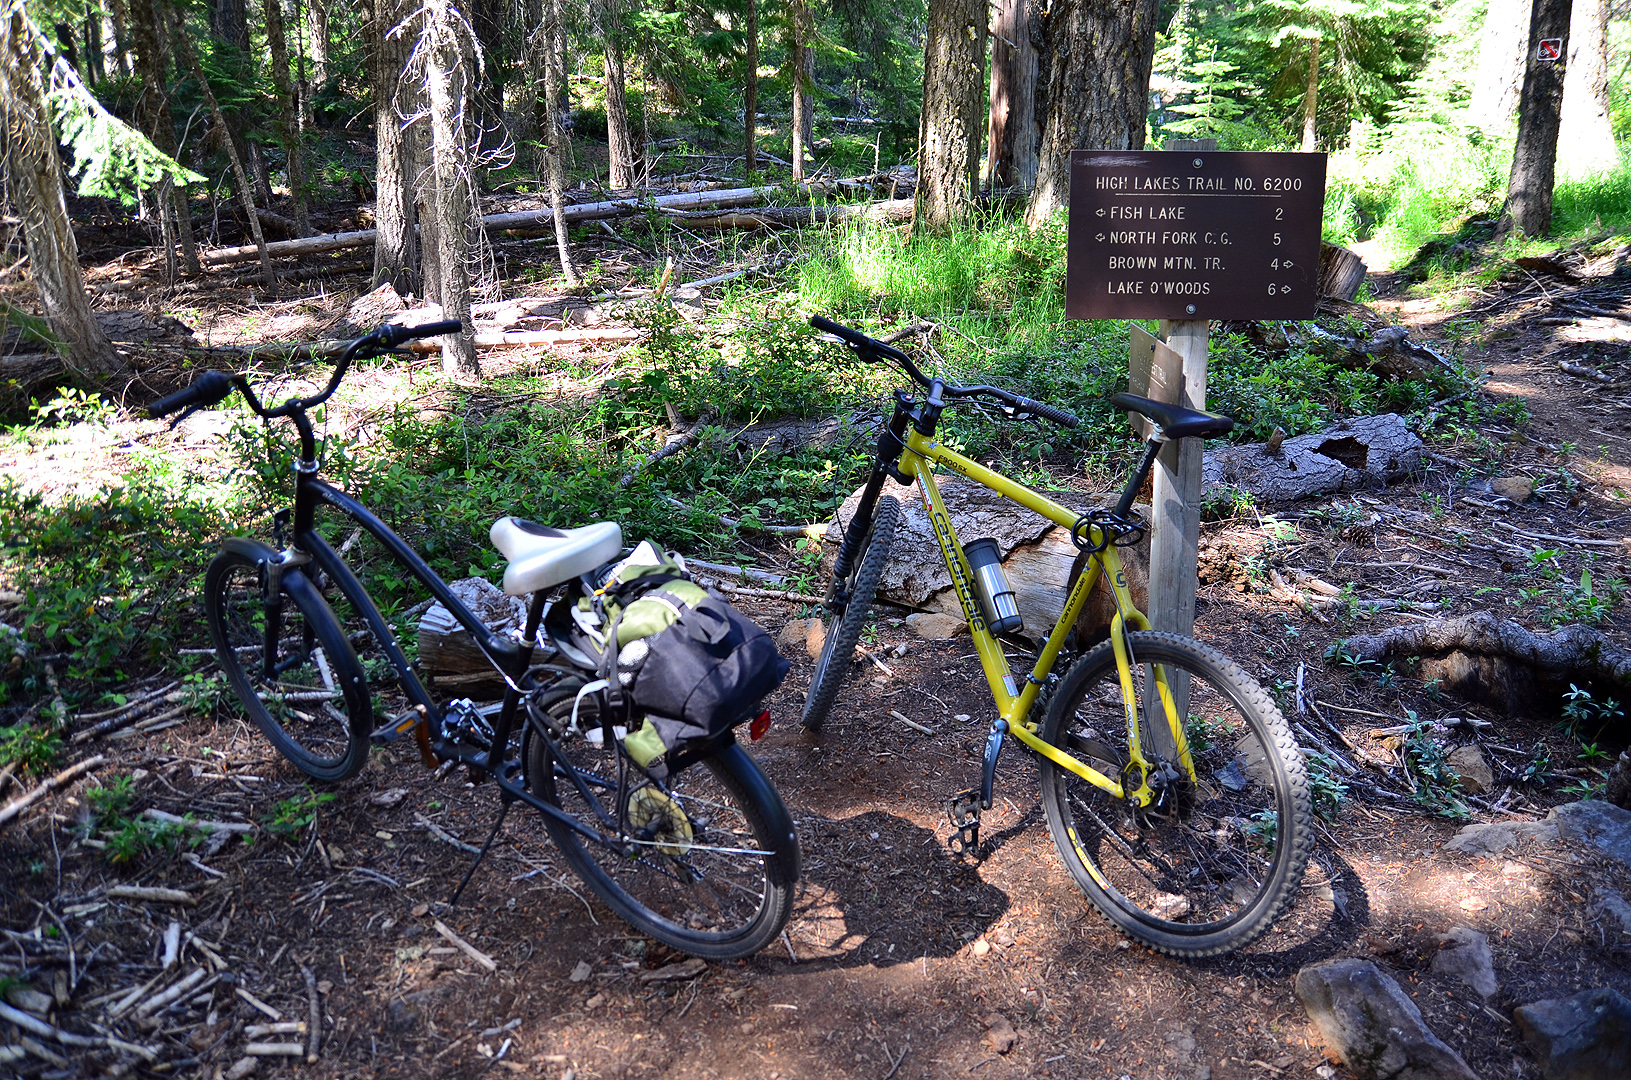 Bike Pacific Crest Trail Bikes at the Pacific Crest